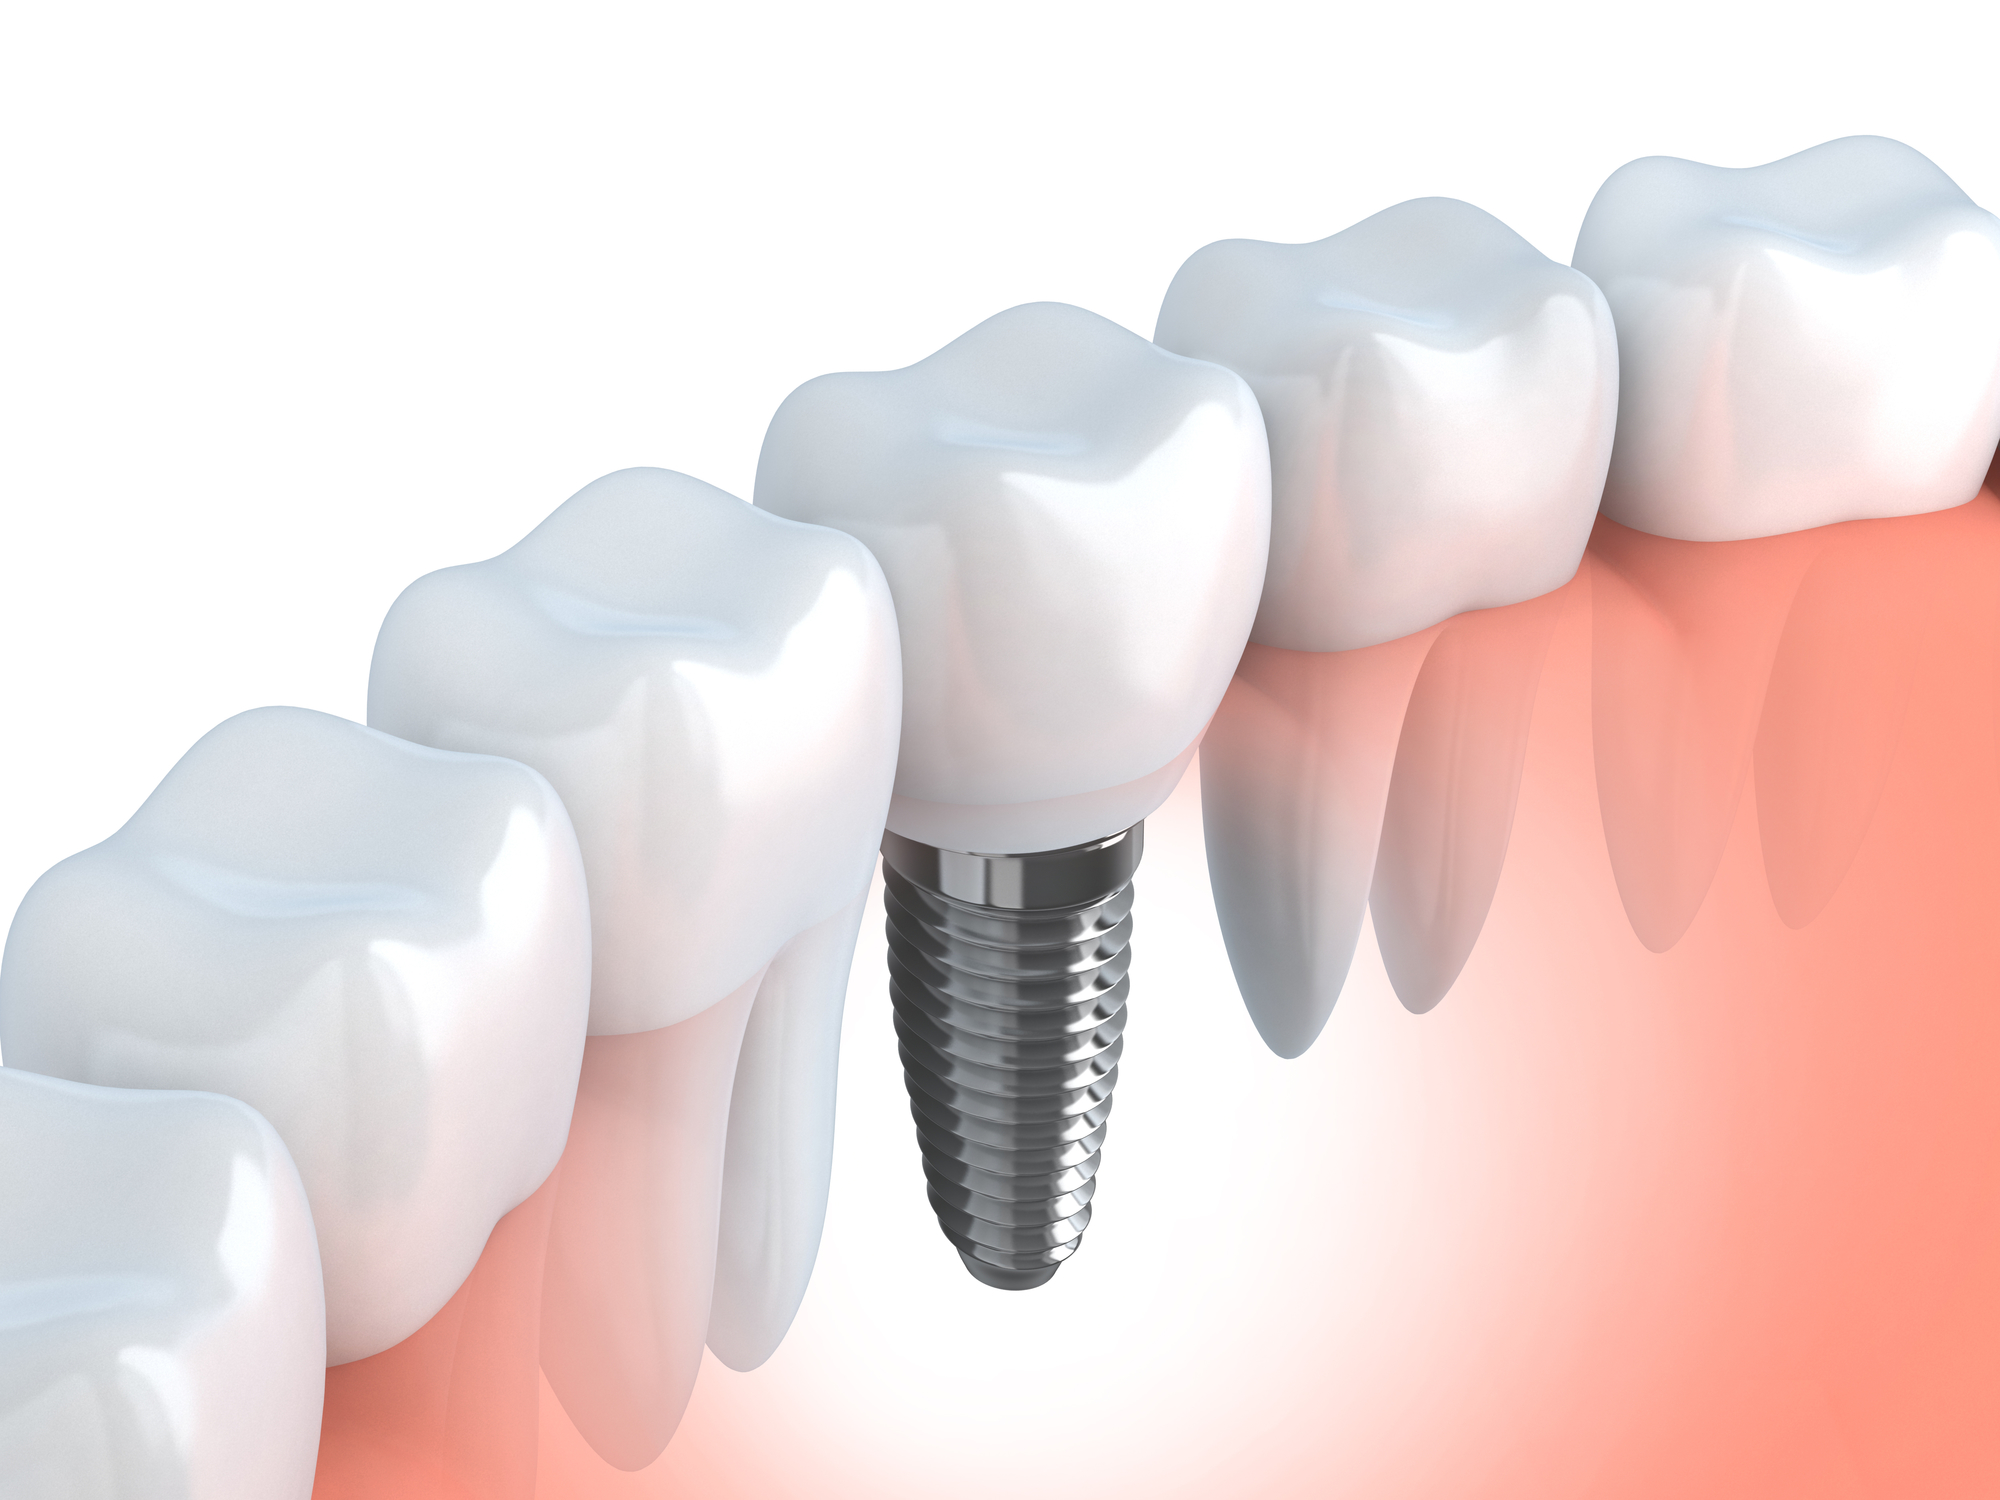 Where can I find the best dental implants in Fort Lauderdale?